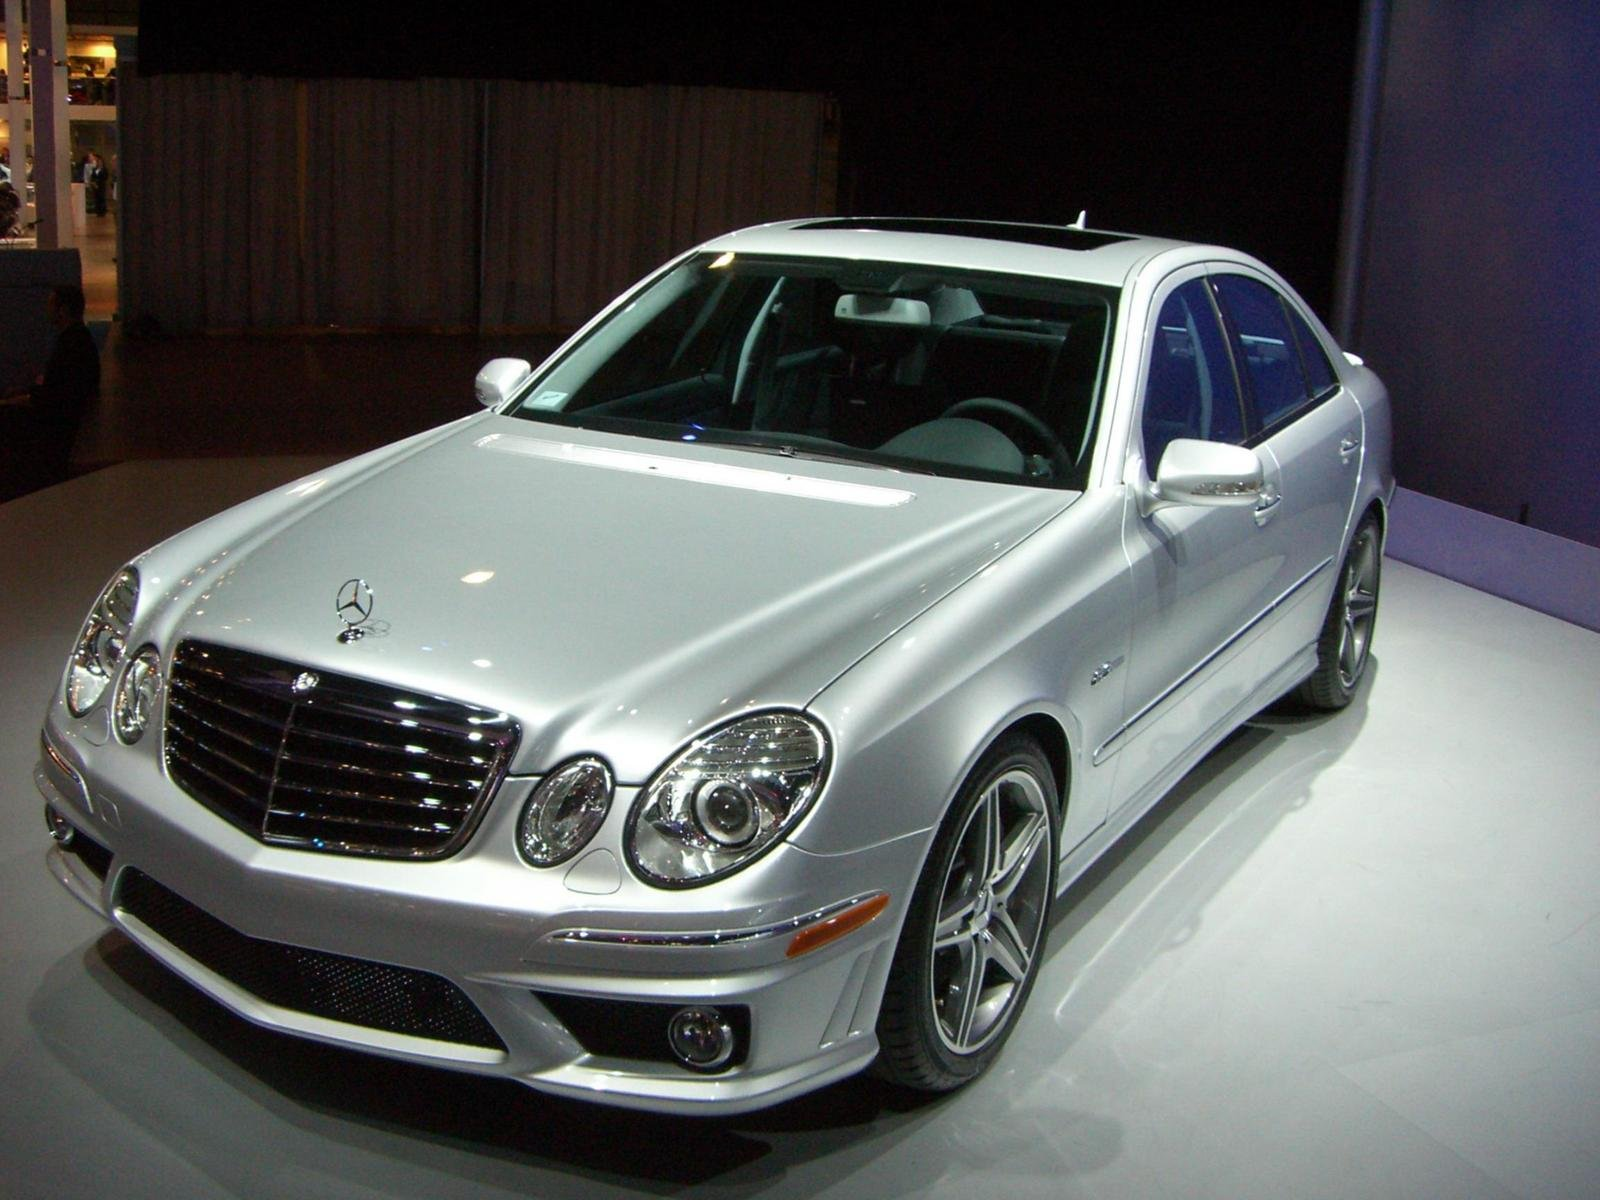 2007 mercedes benz e63 amg picture 53103 car review. Black Bedroom Furniture Sets. Home Design Ideas